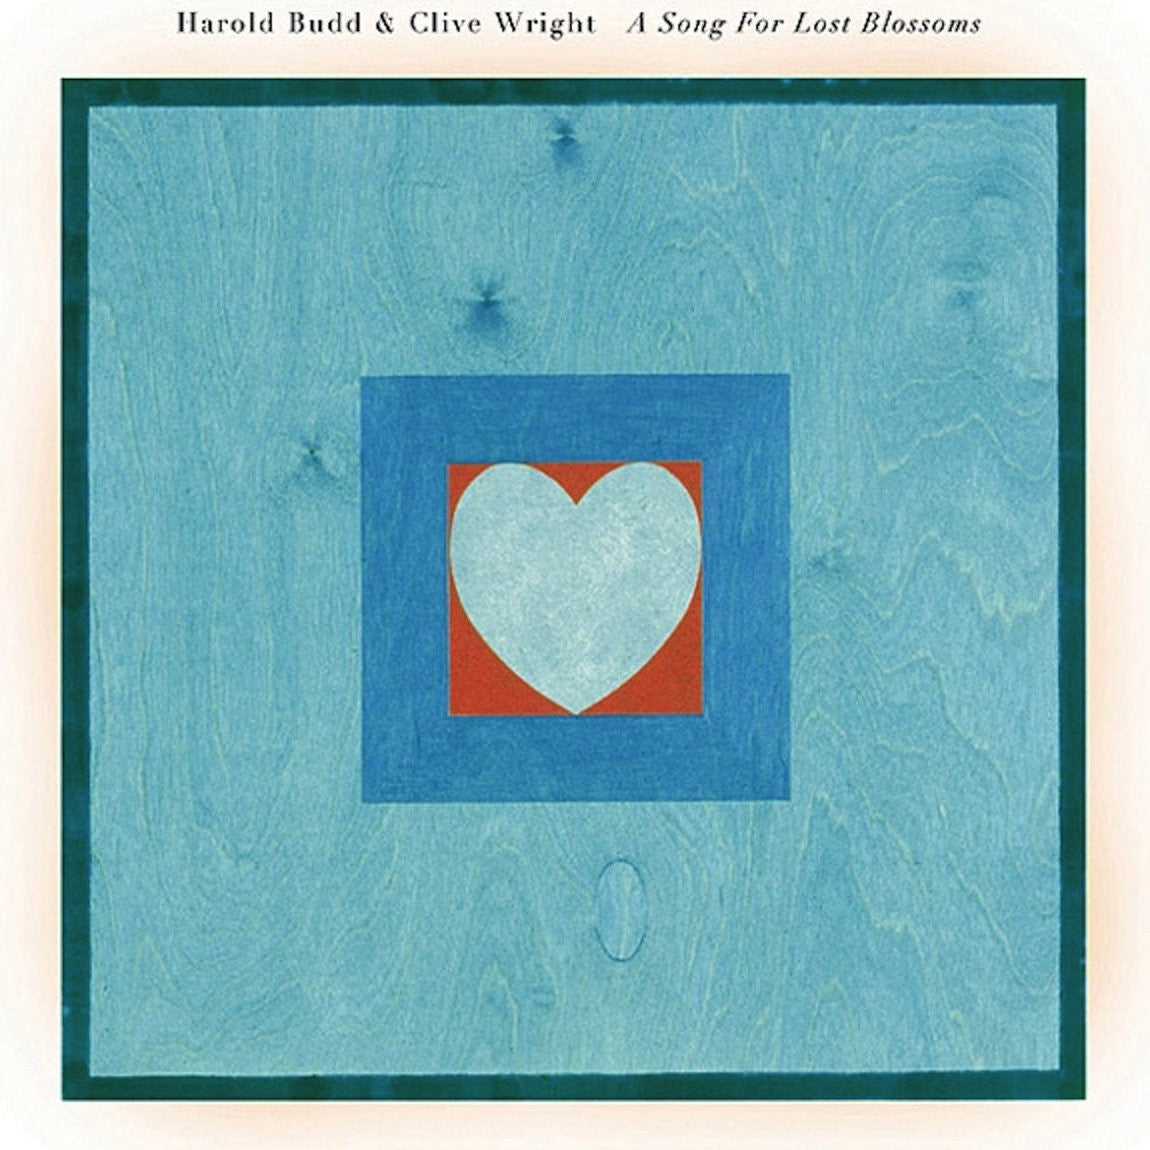 Harold Budd & Clive Wright - A Song for Lost Blossoms